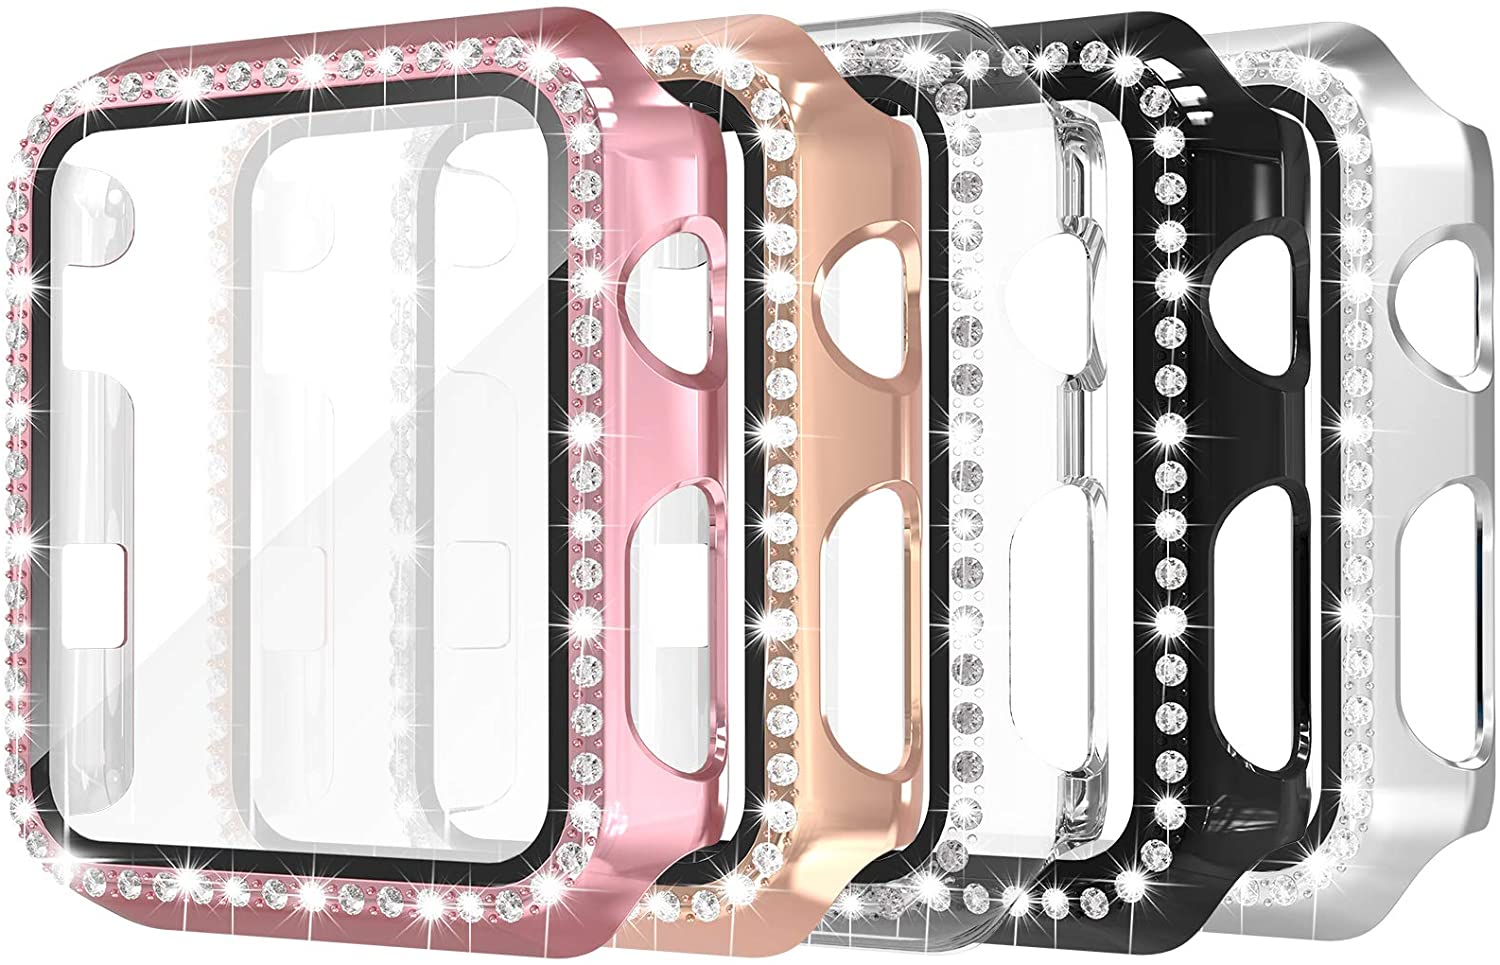 Simpeak 5 Pack 38mm Bling Case Built-in Glass Screen Protector Compatible with Apple Watch Series 3 2 1, Crystals Hard Protector Case Replacement for iWatch 38mm, Rose Gold Pink/Black/Silver/Clear